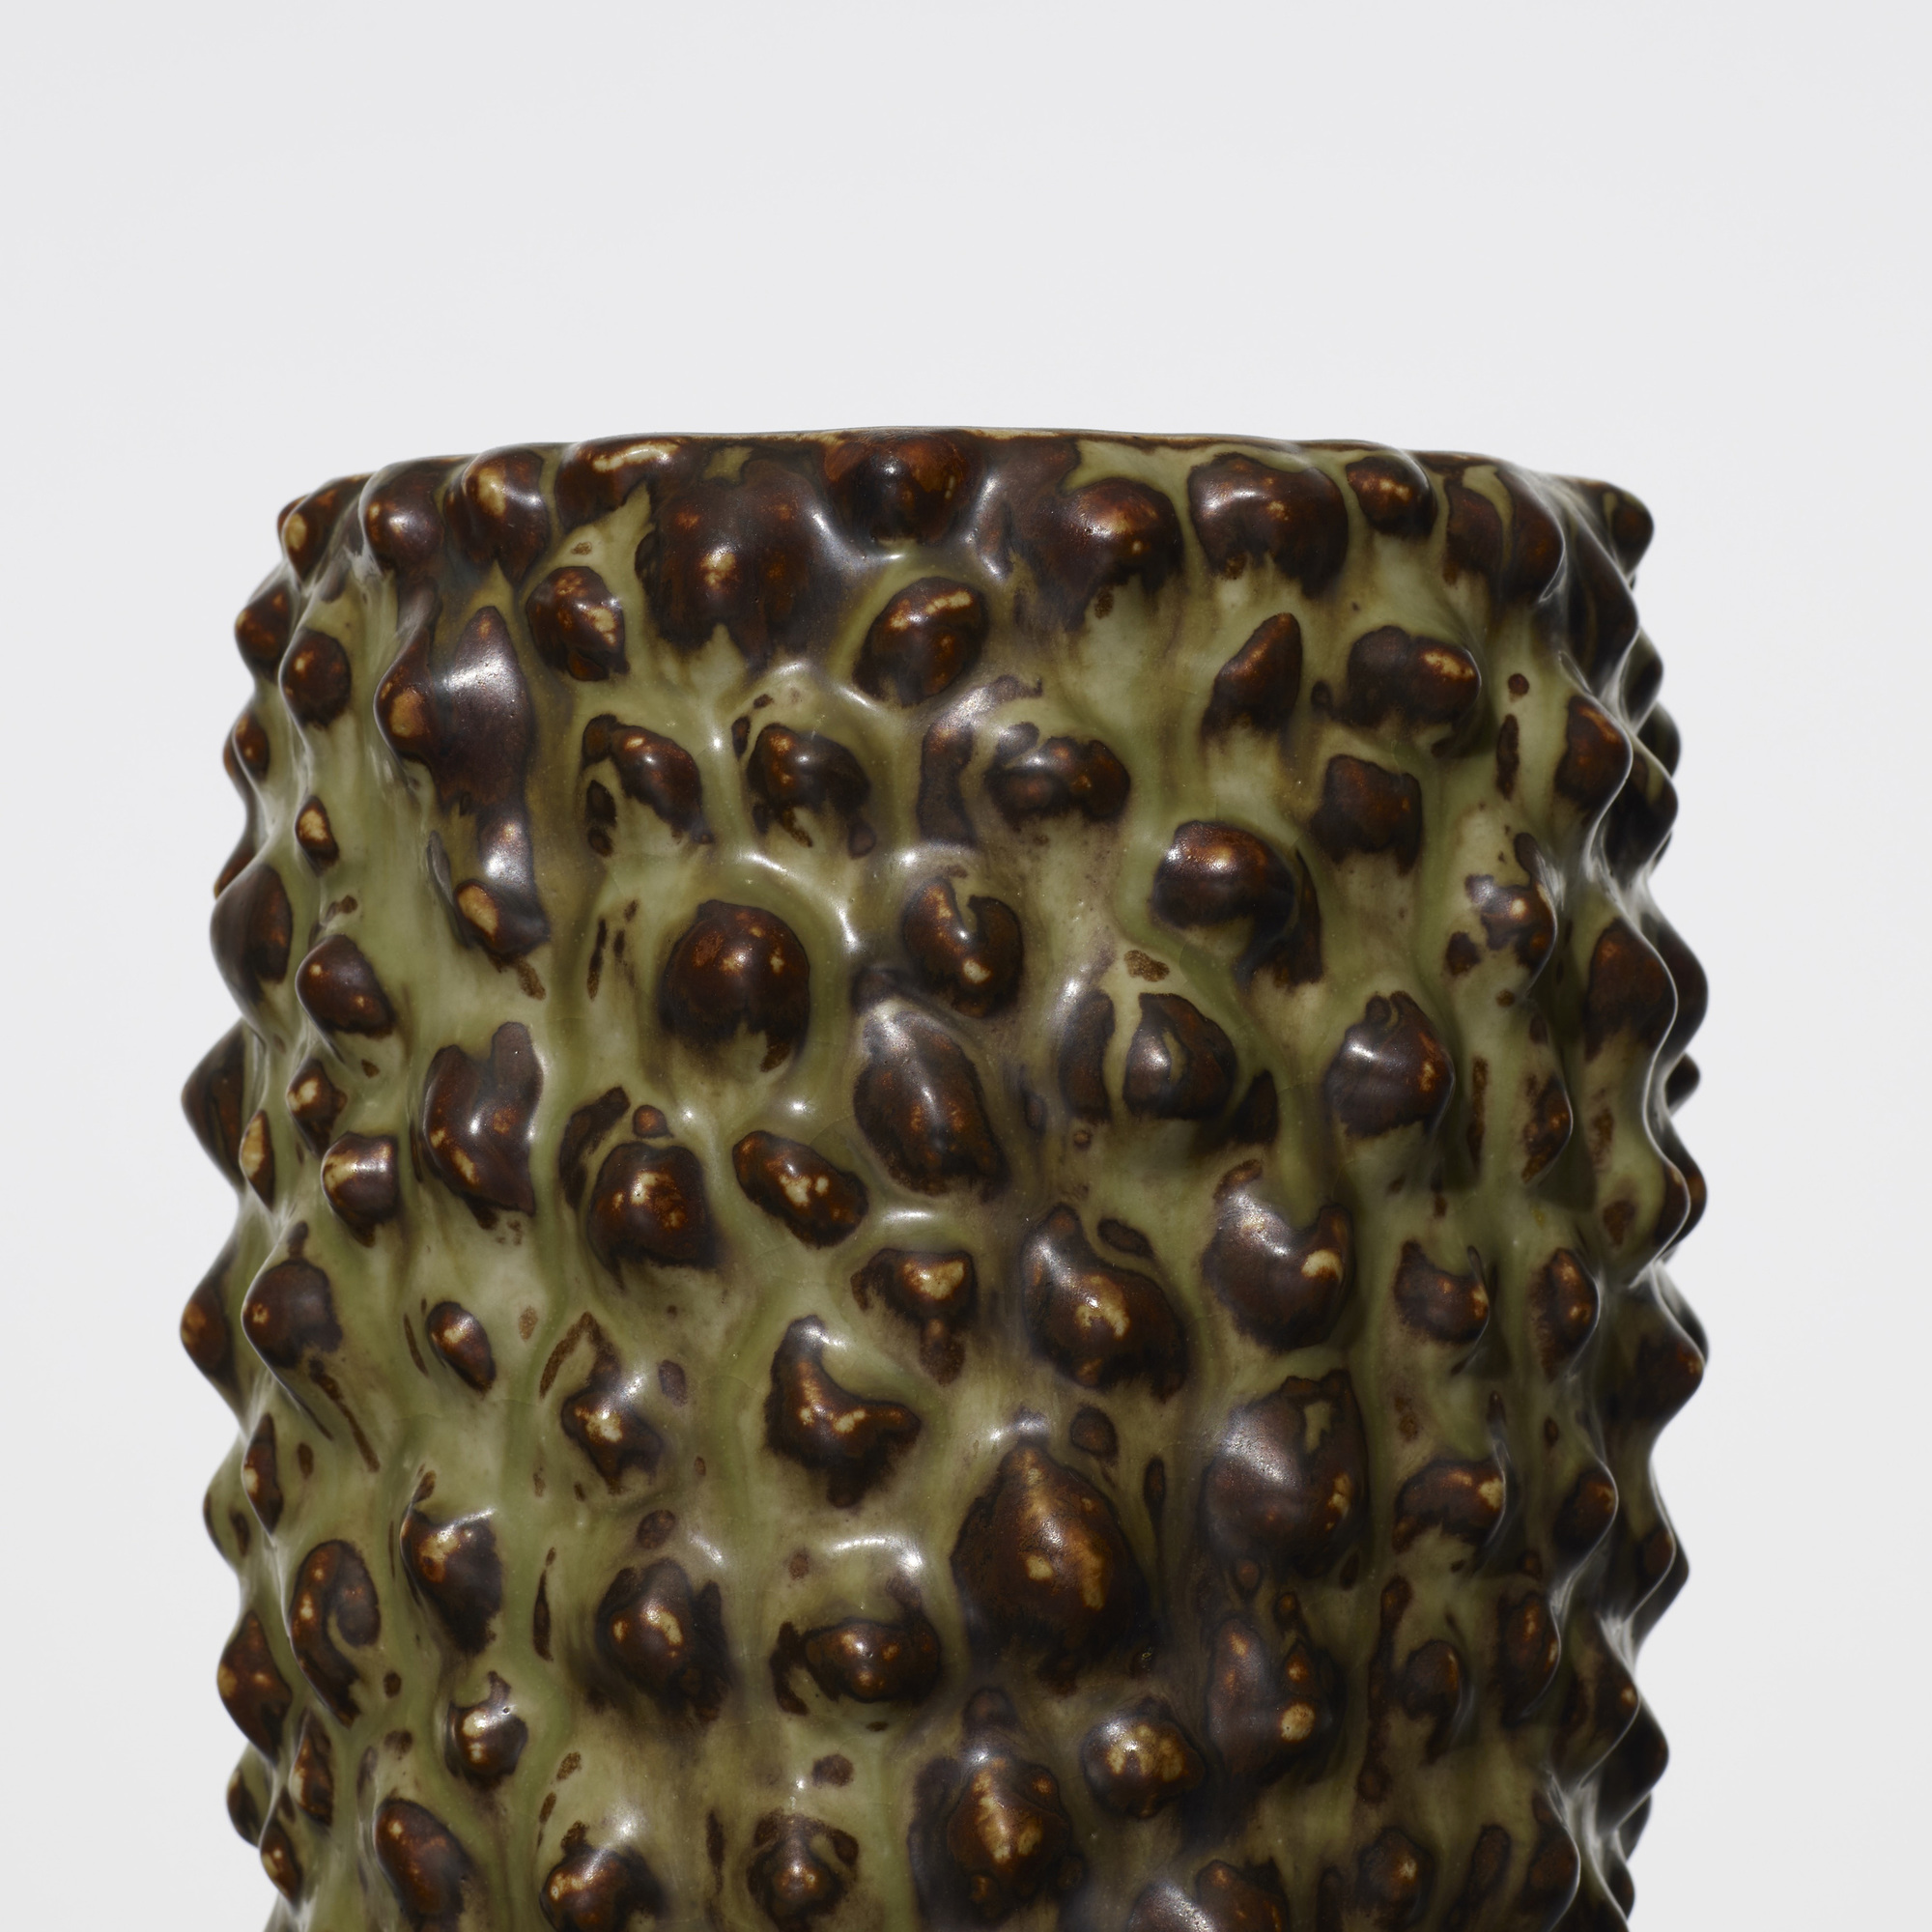 287: Axel Salto / Budding vase (2 of 3)